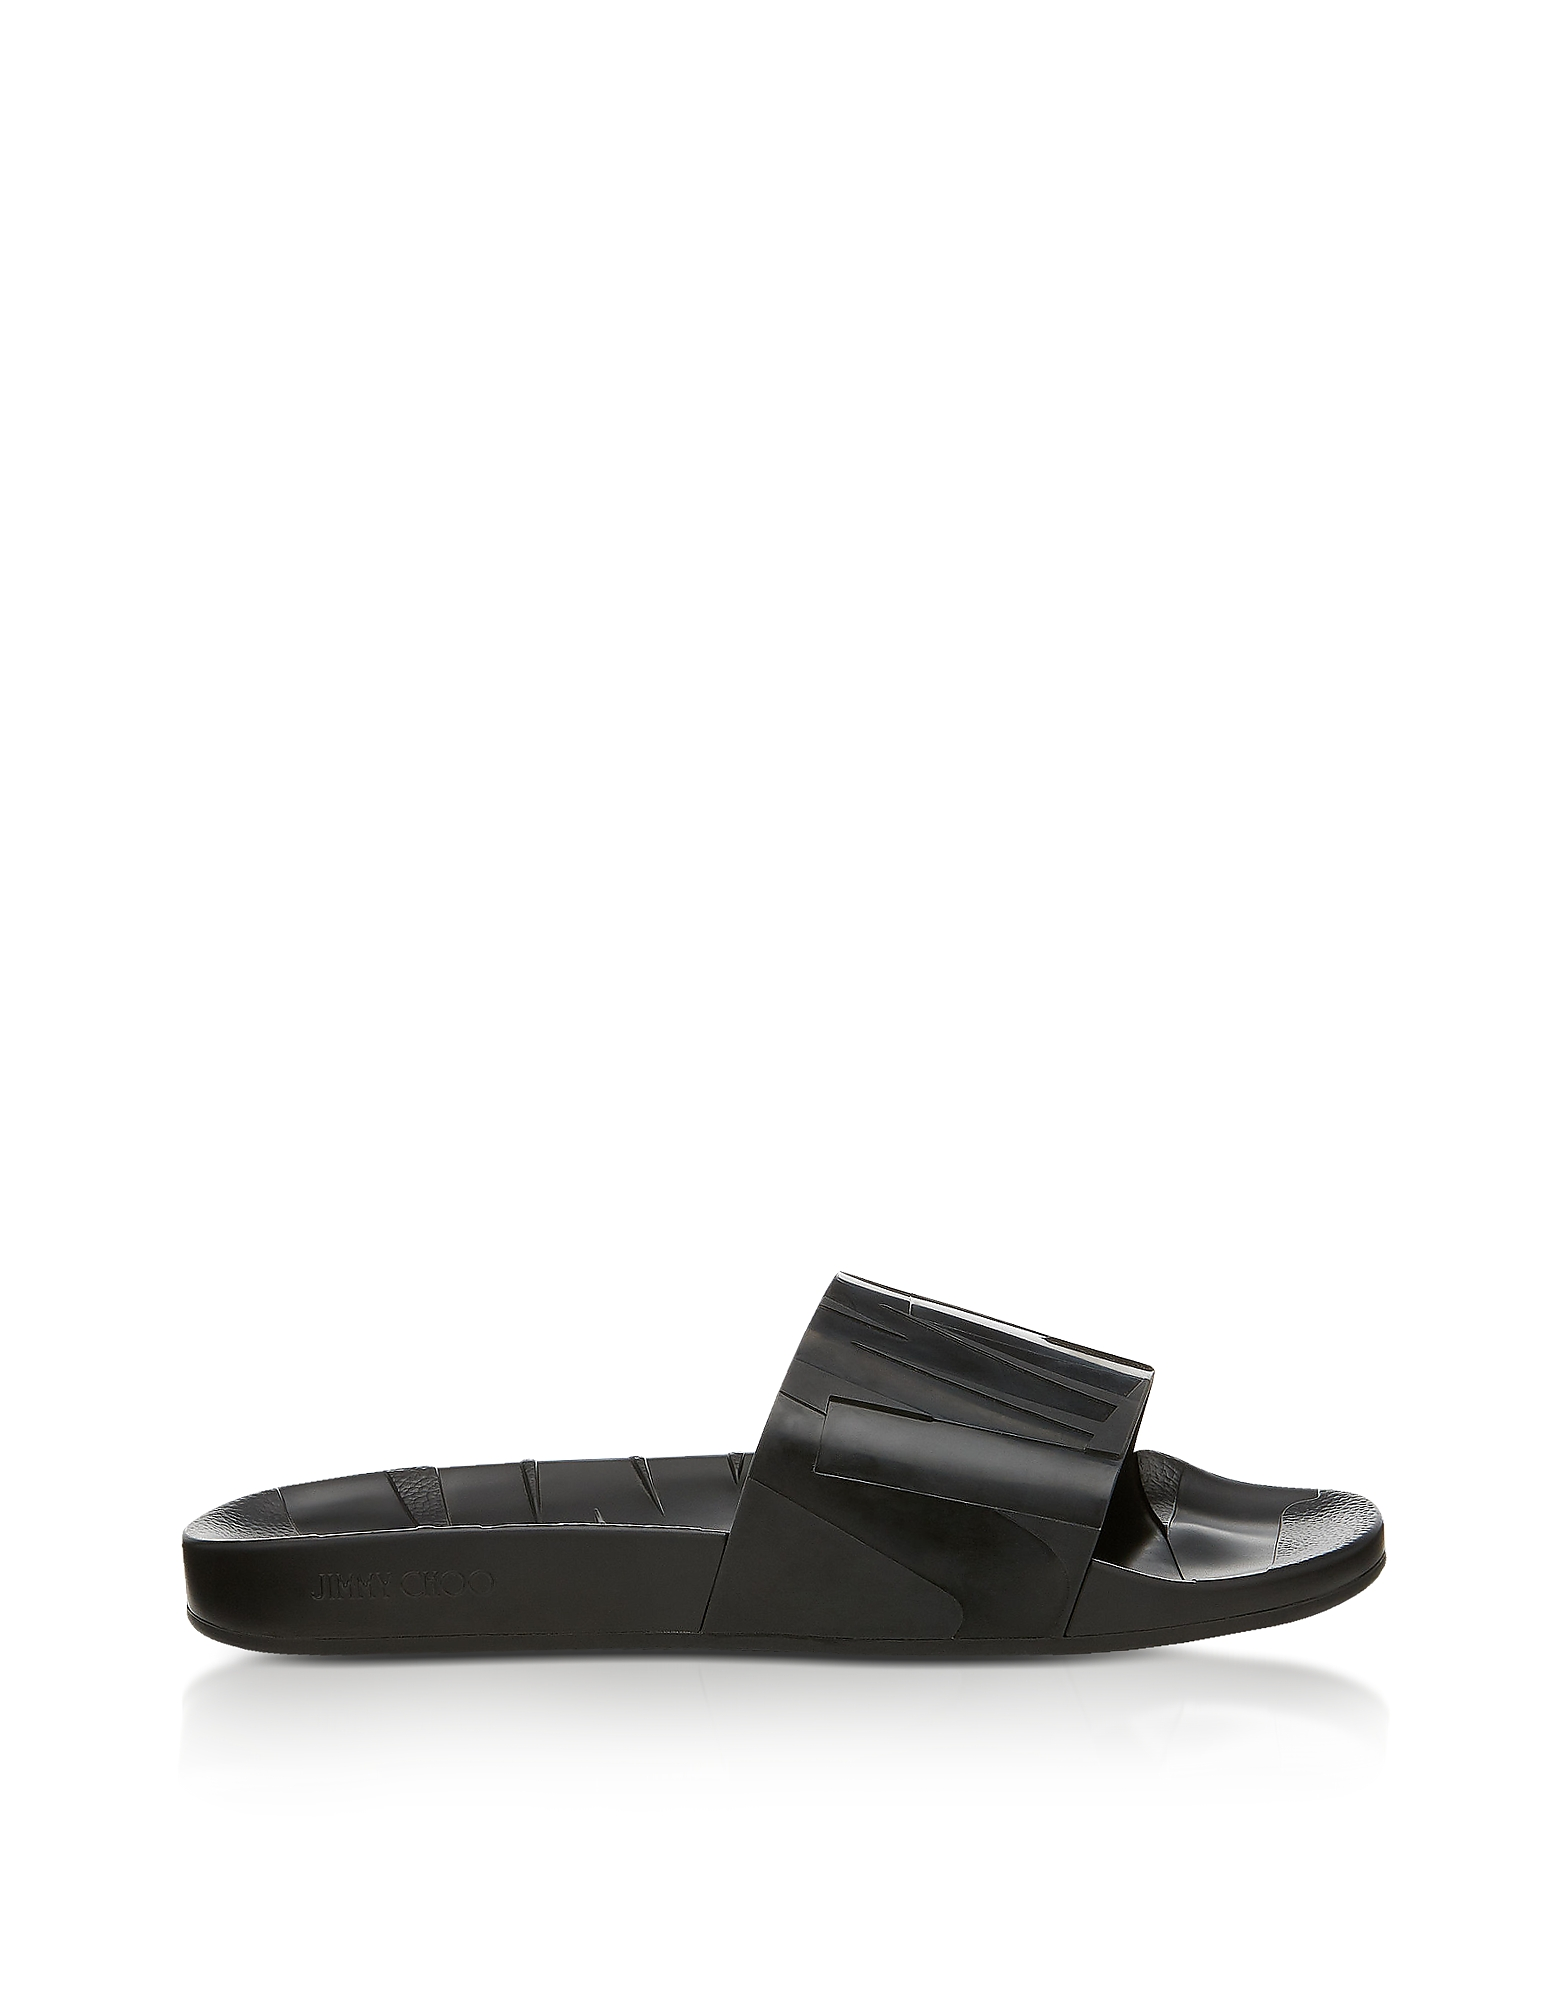 REY/M BLACK RUBBER SLIDES from FORZIERI